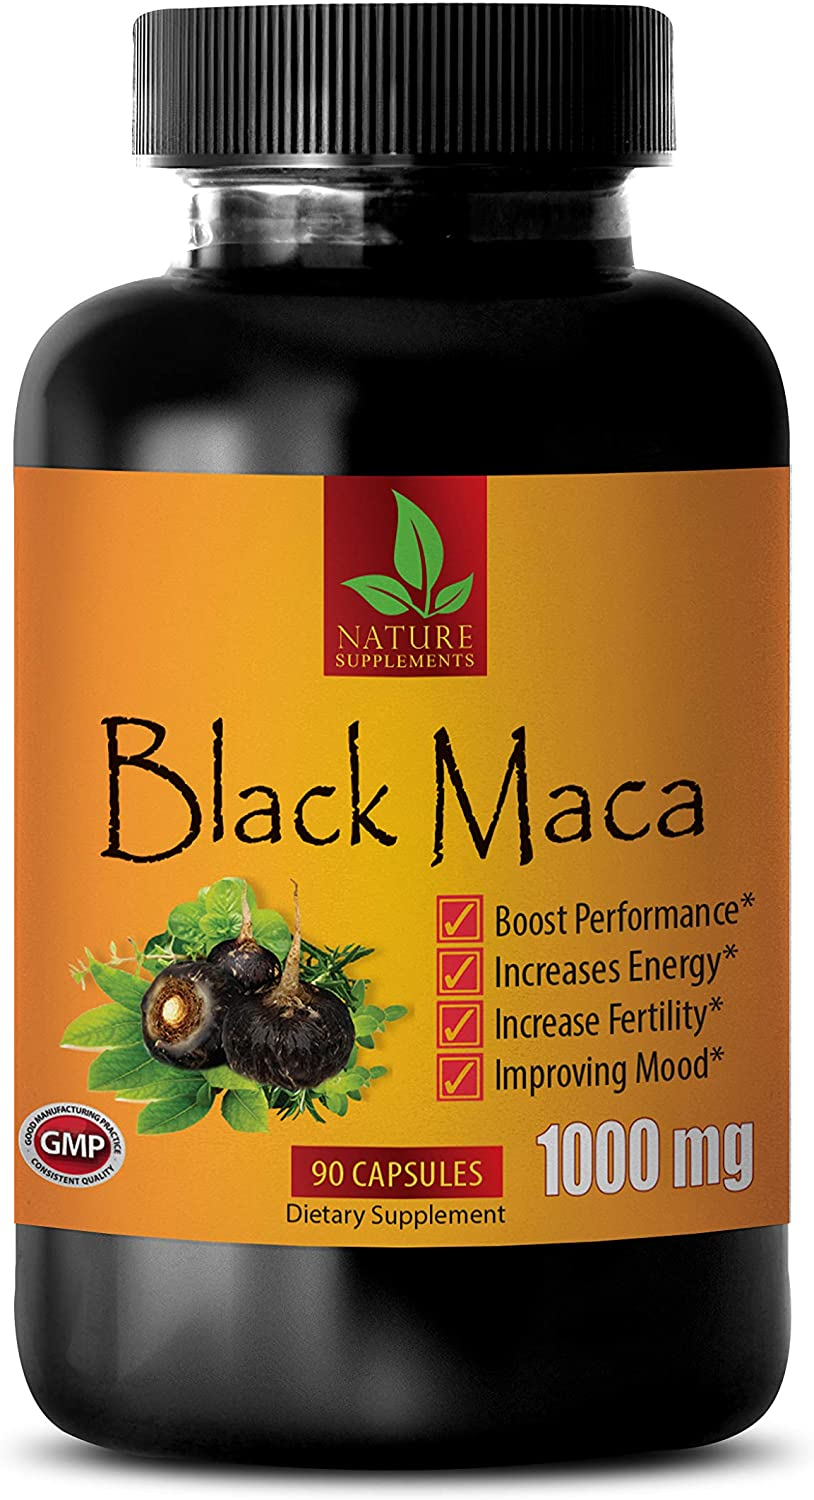 Energy Booster Supplements - Black MACA 1000 MG - Dietary Supplement - Black maca Extract Capsules - 1 Bottle 90 Capsules